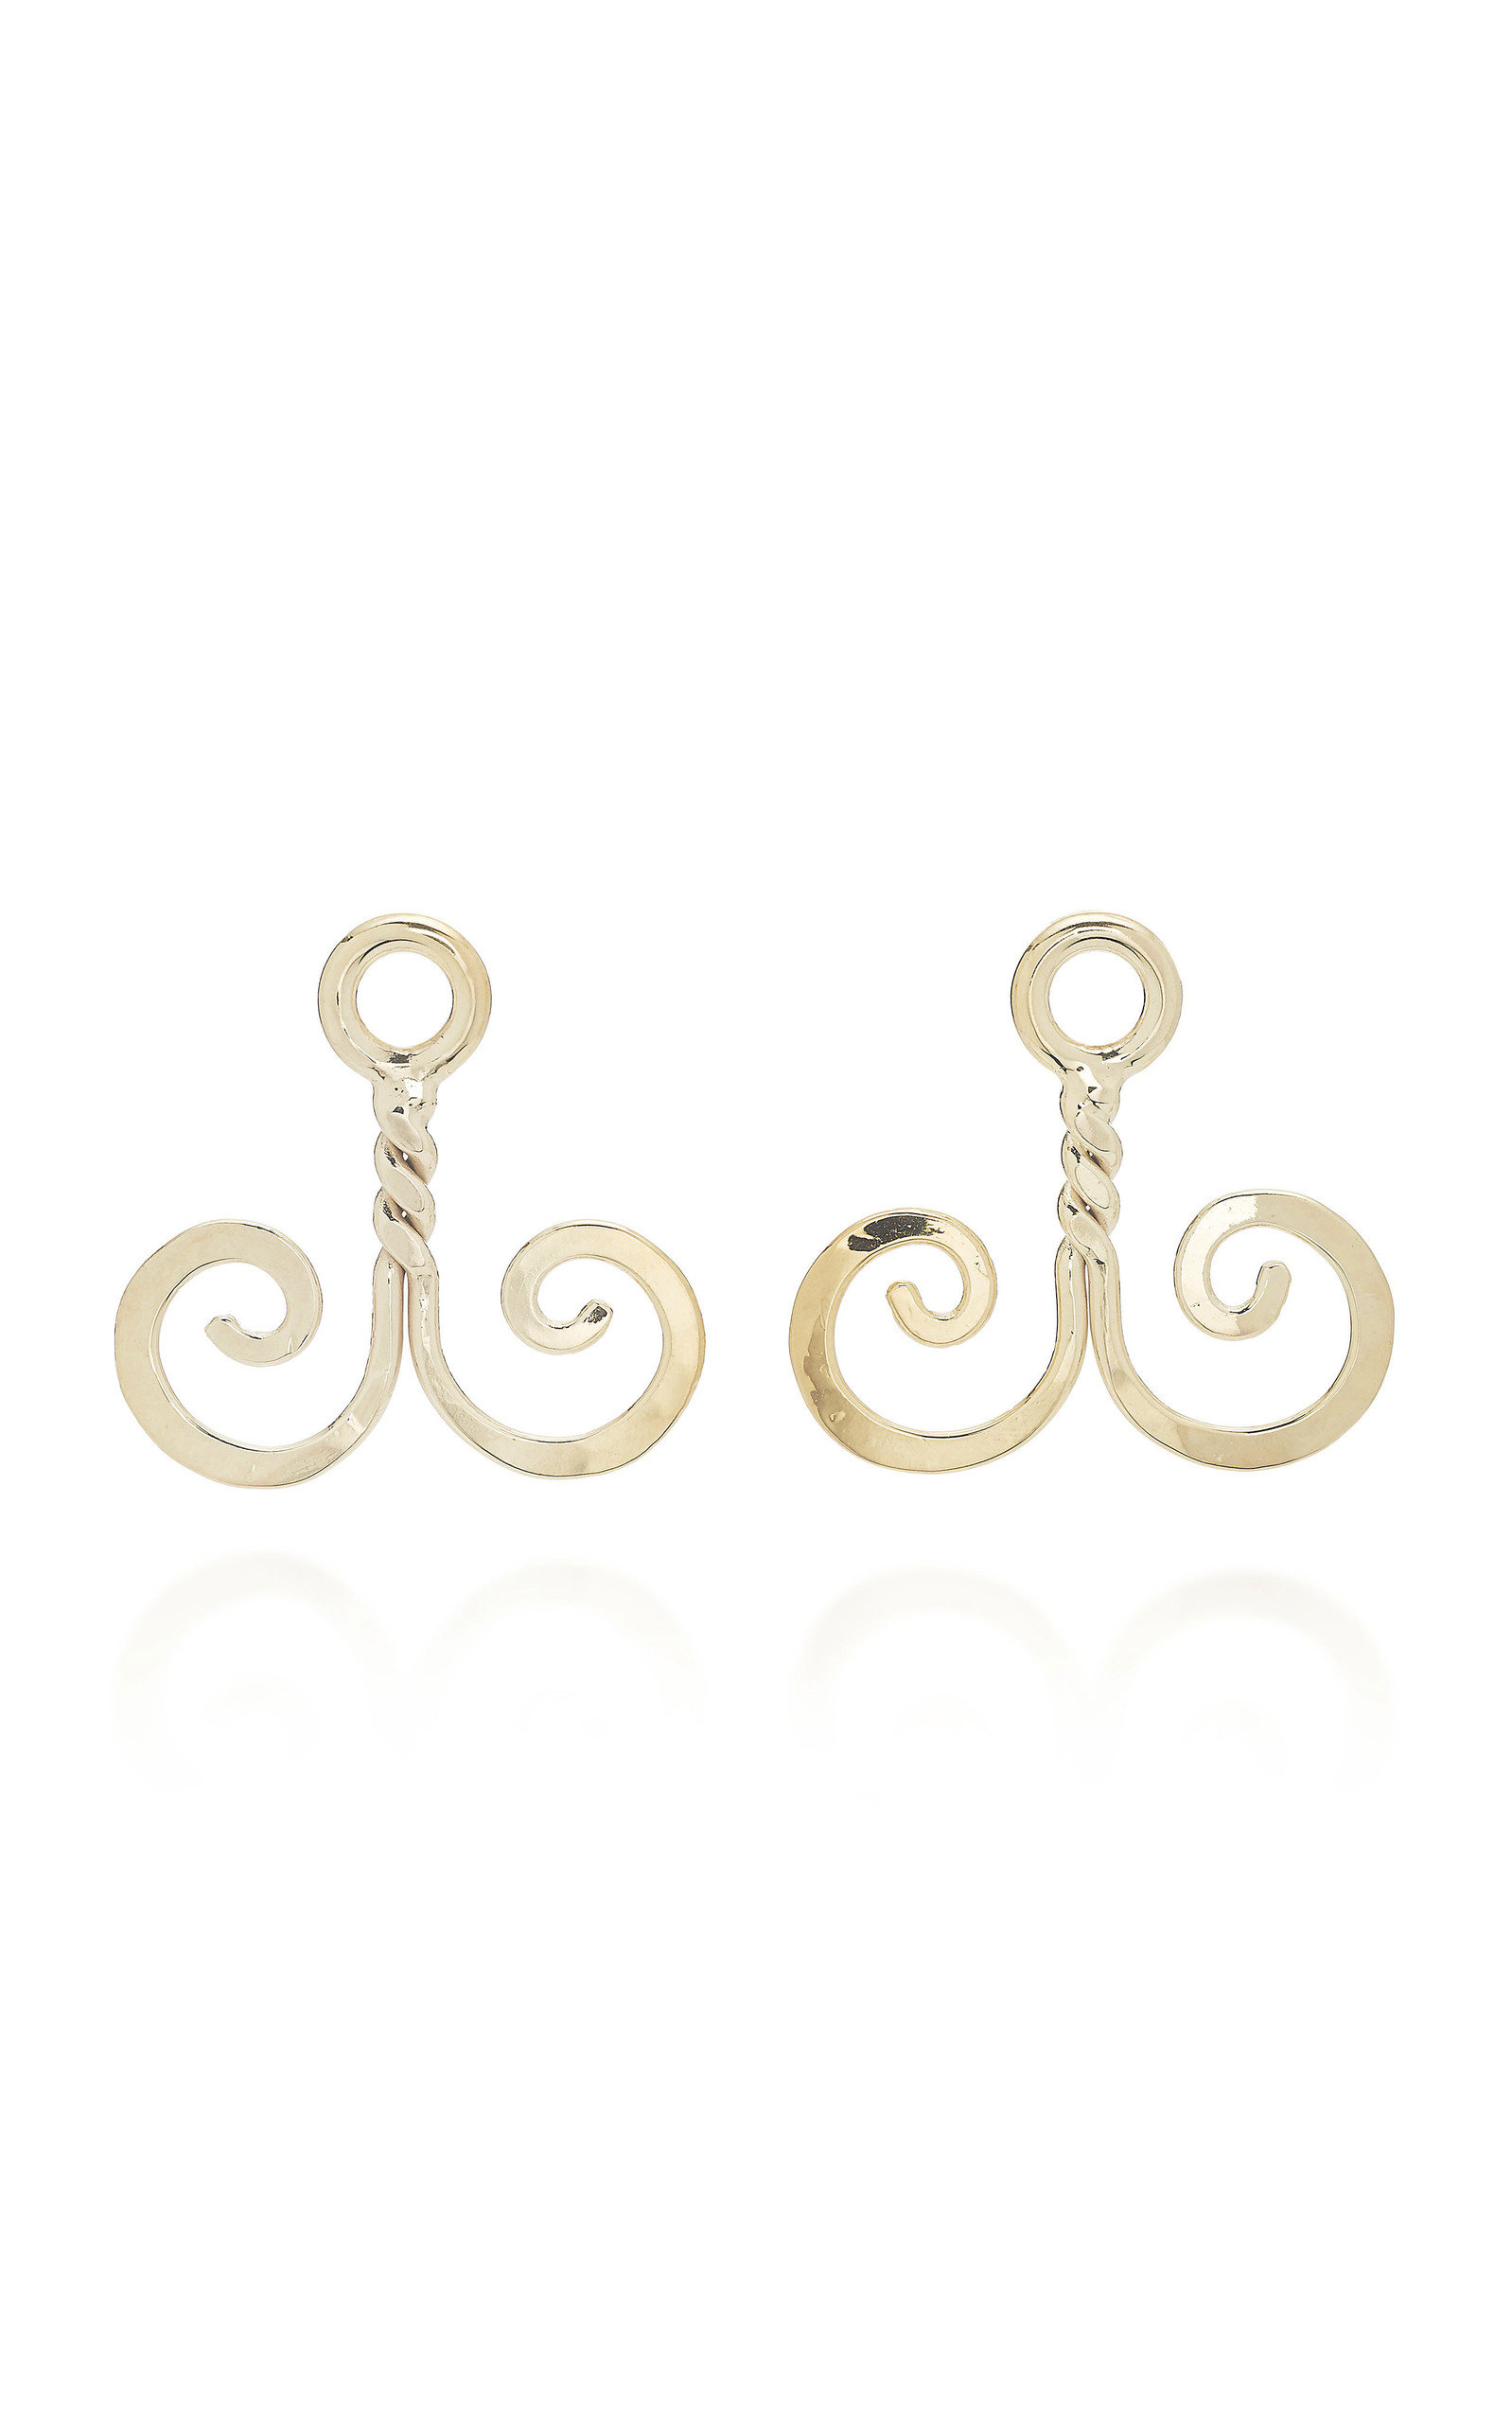 Aracano_Aros_Gold_Plunge_Earrings_Moda_Operando.jpg